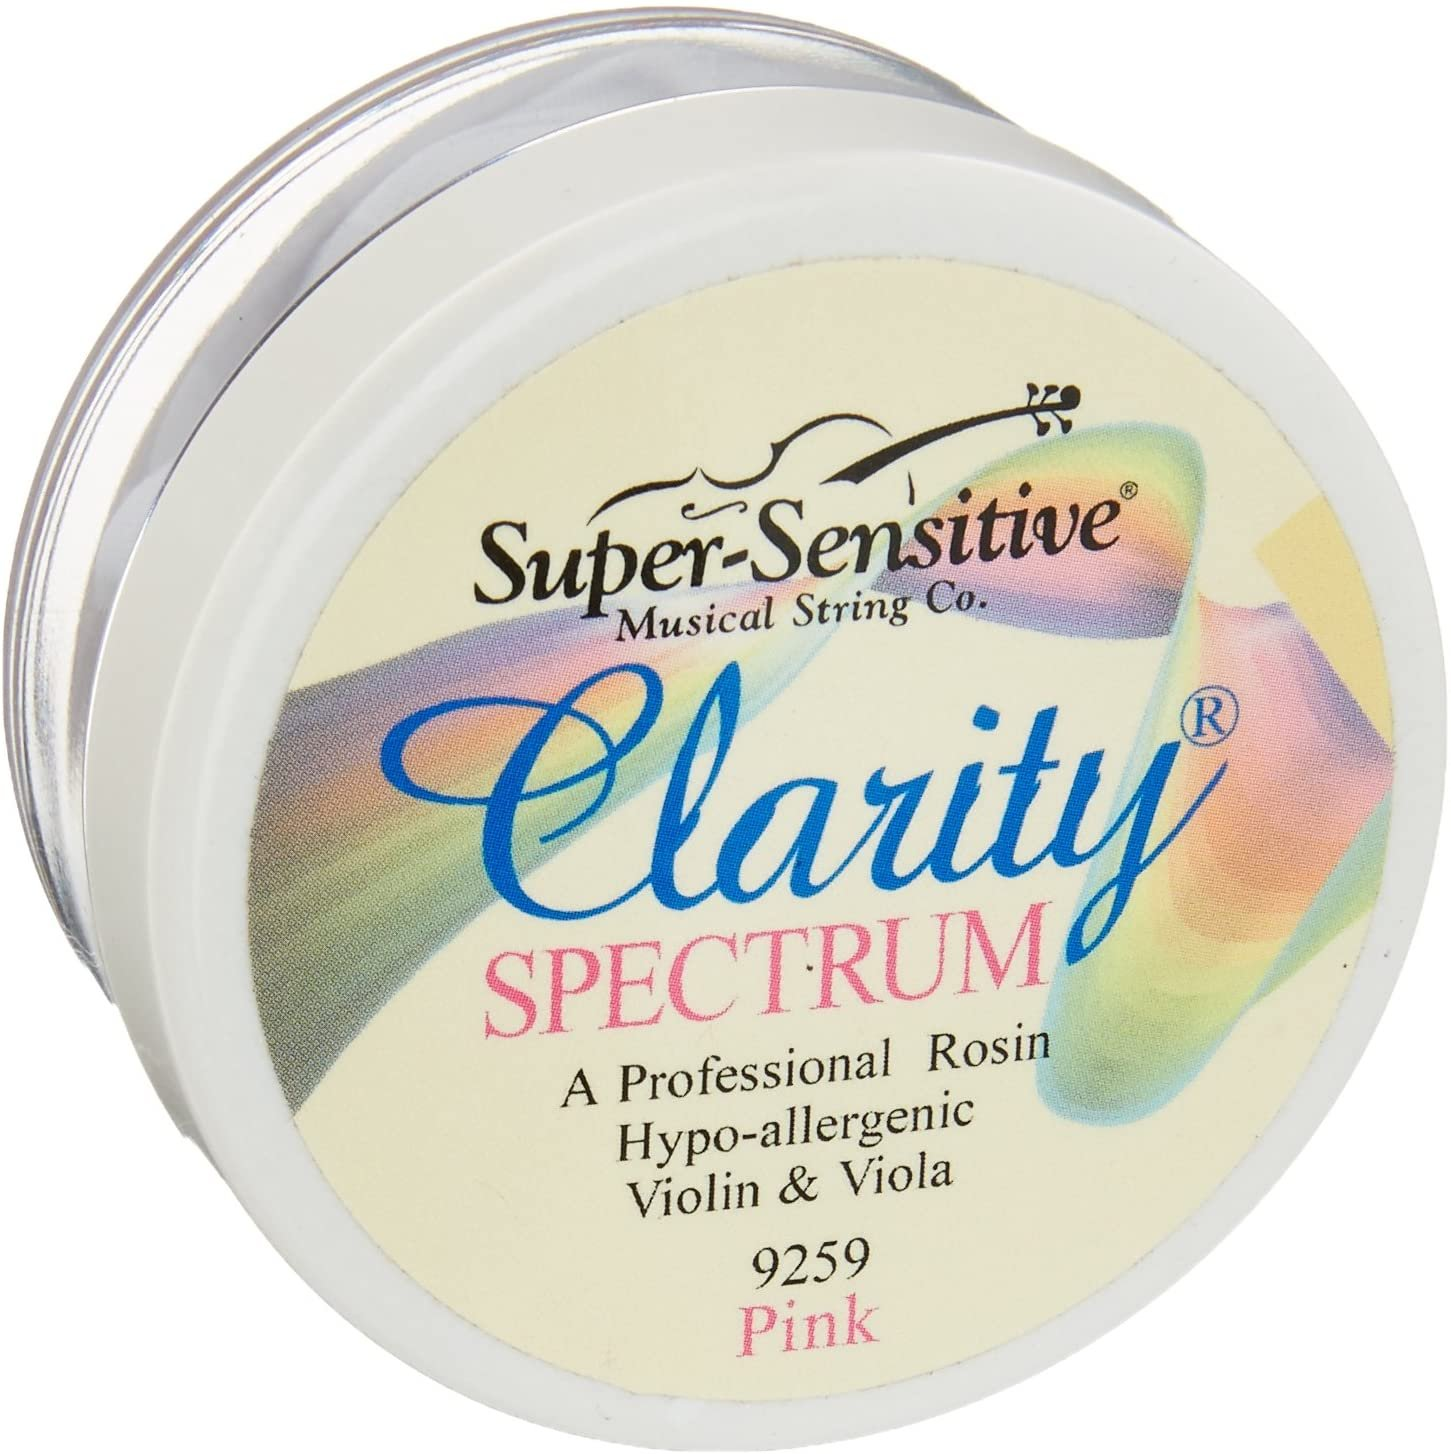 Super Sensitive Clarity Spectrum Violin/Viola Rosin Pink